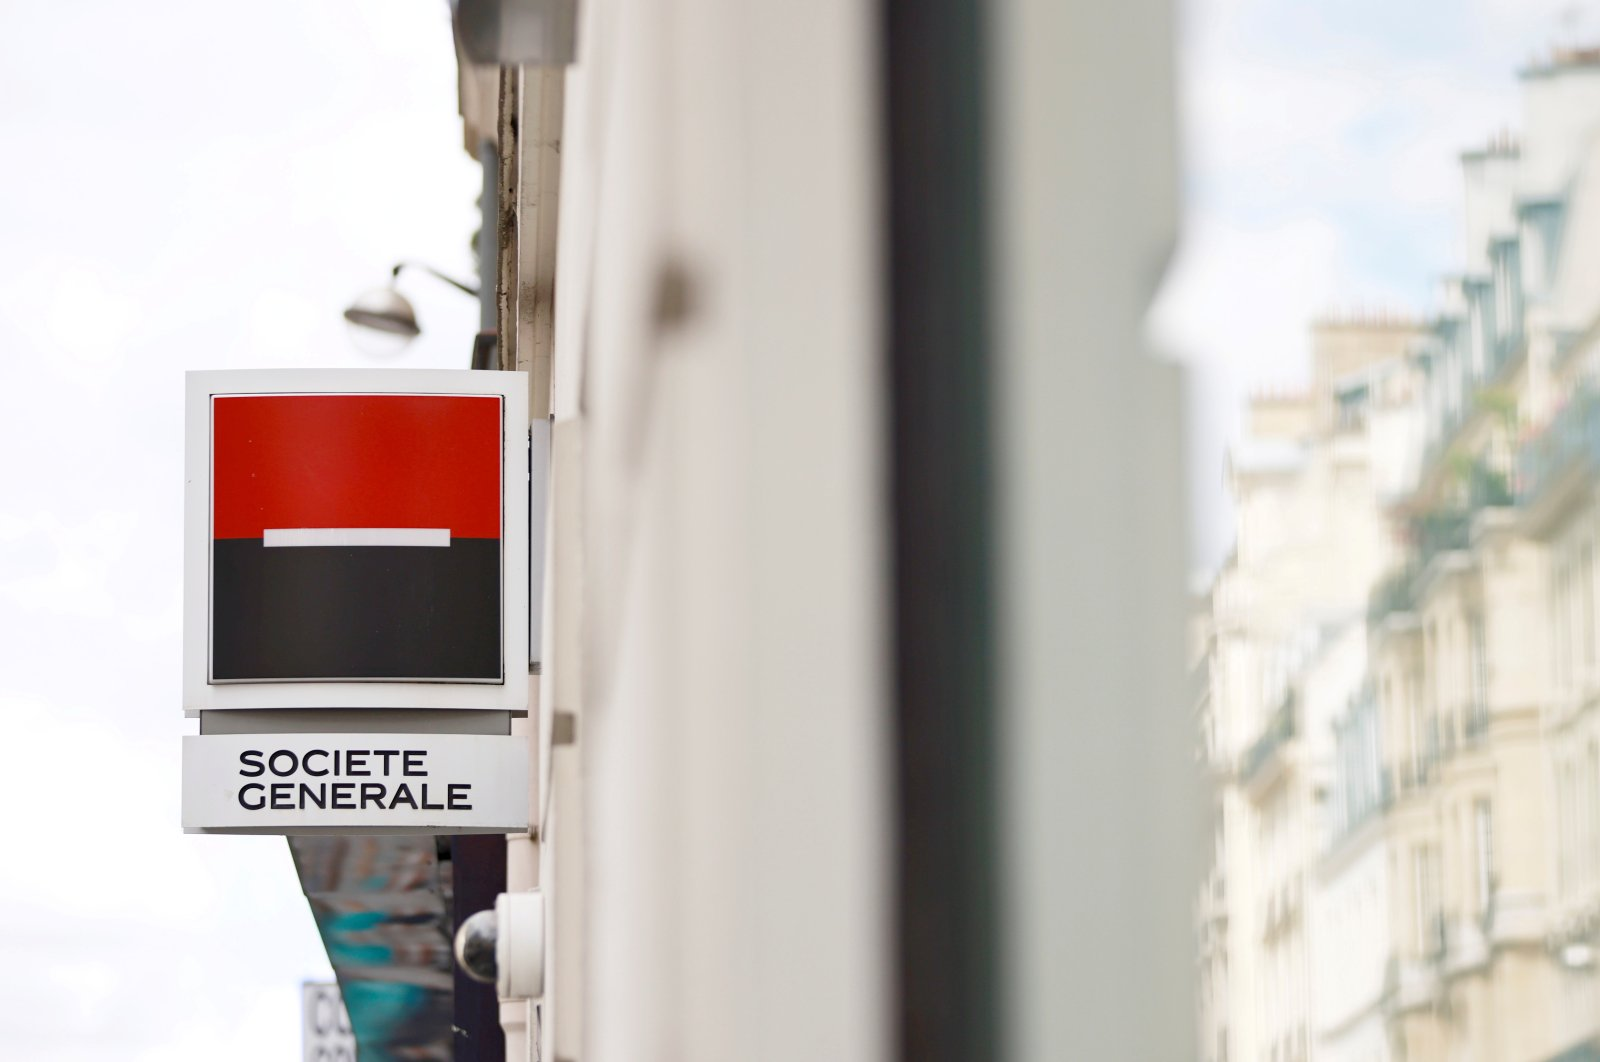 A Societe Generale sign is seen outside a bank building in Paris, France, Aug. 1, 2021. (Reuters Photo)